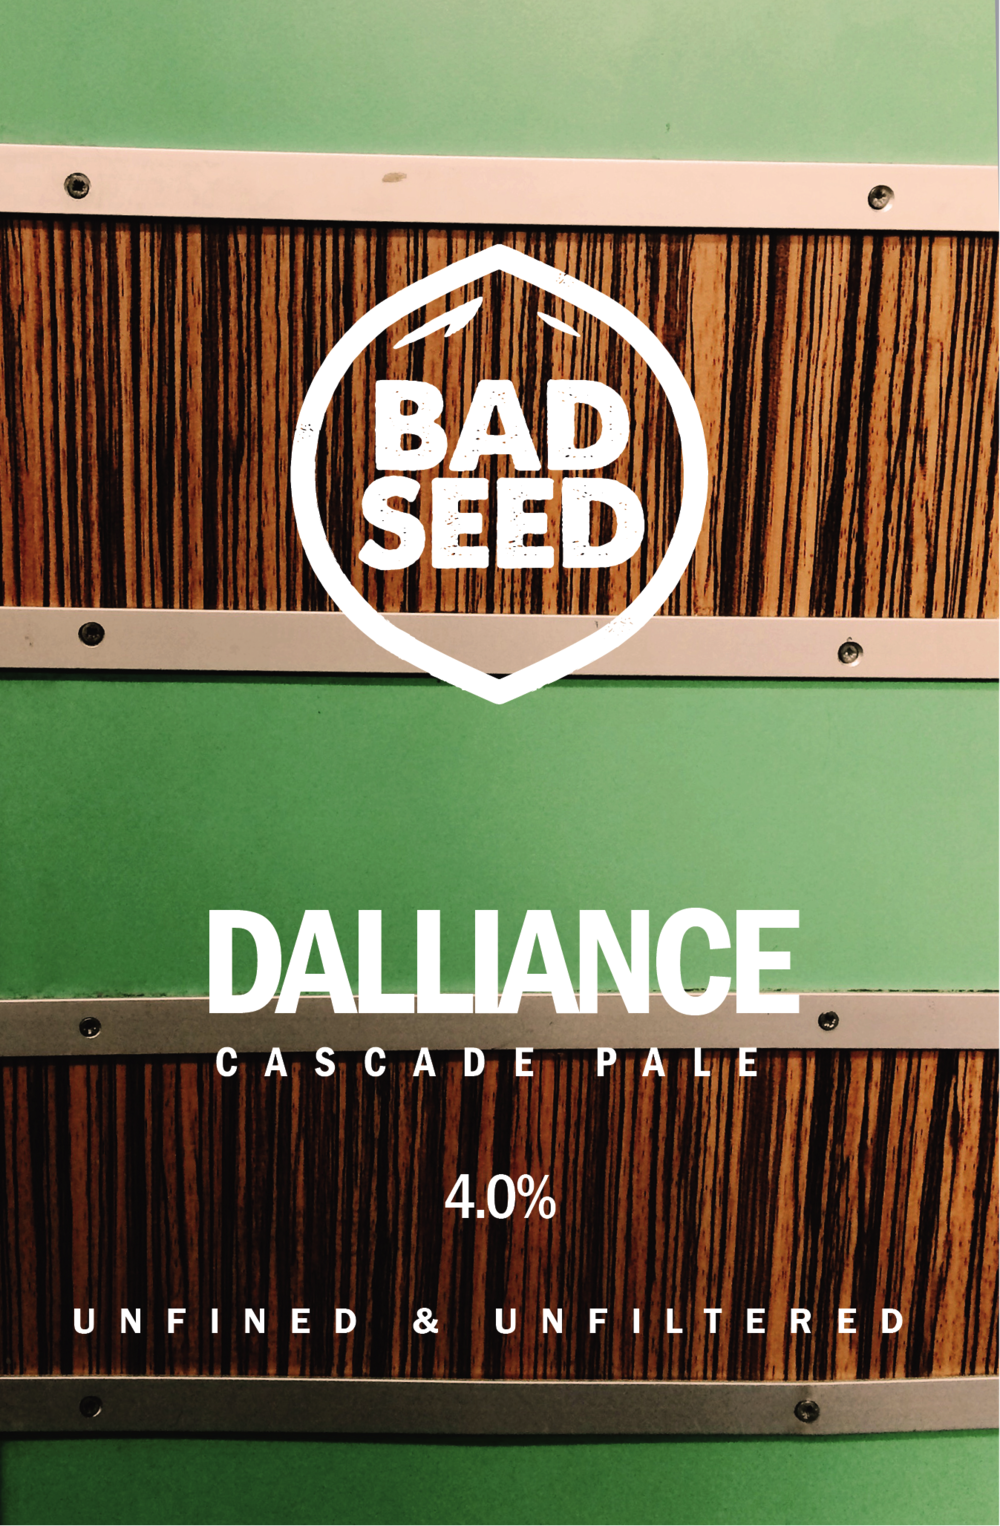 Dalliance.  Cascade hopped pale with fresh flavours of grapefruit, lychee and citrus from the hop that started the craft beer movement.  4.0%  Cask only.